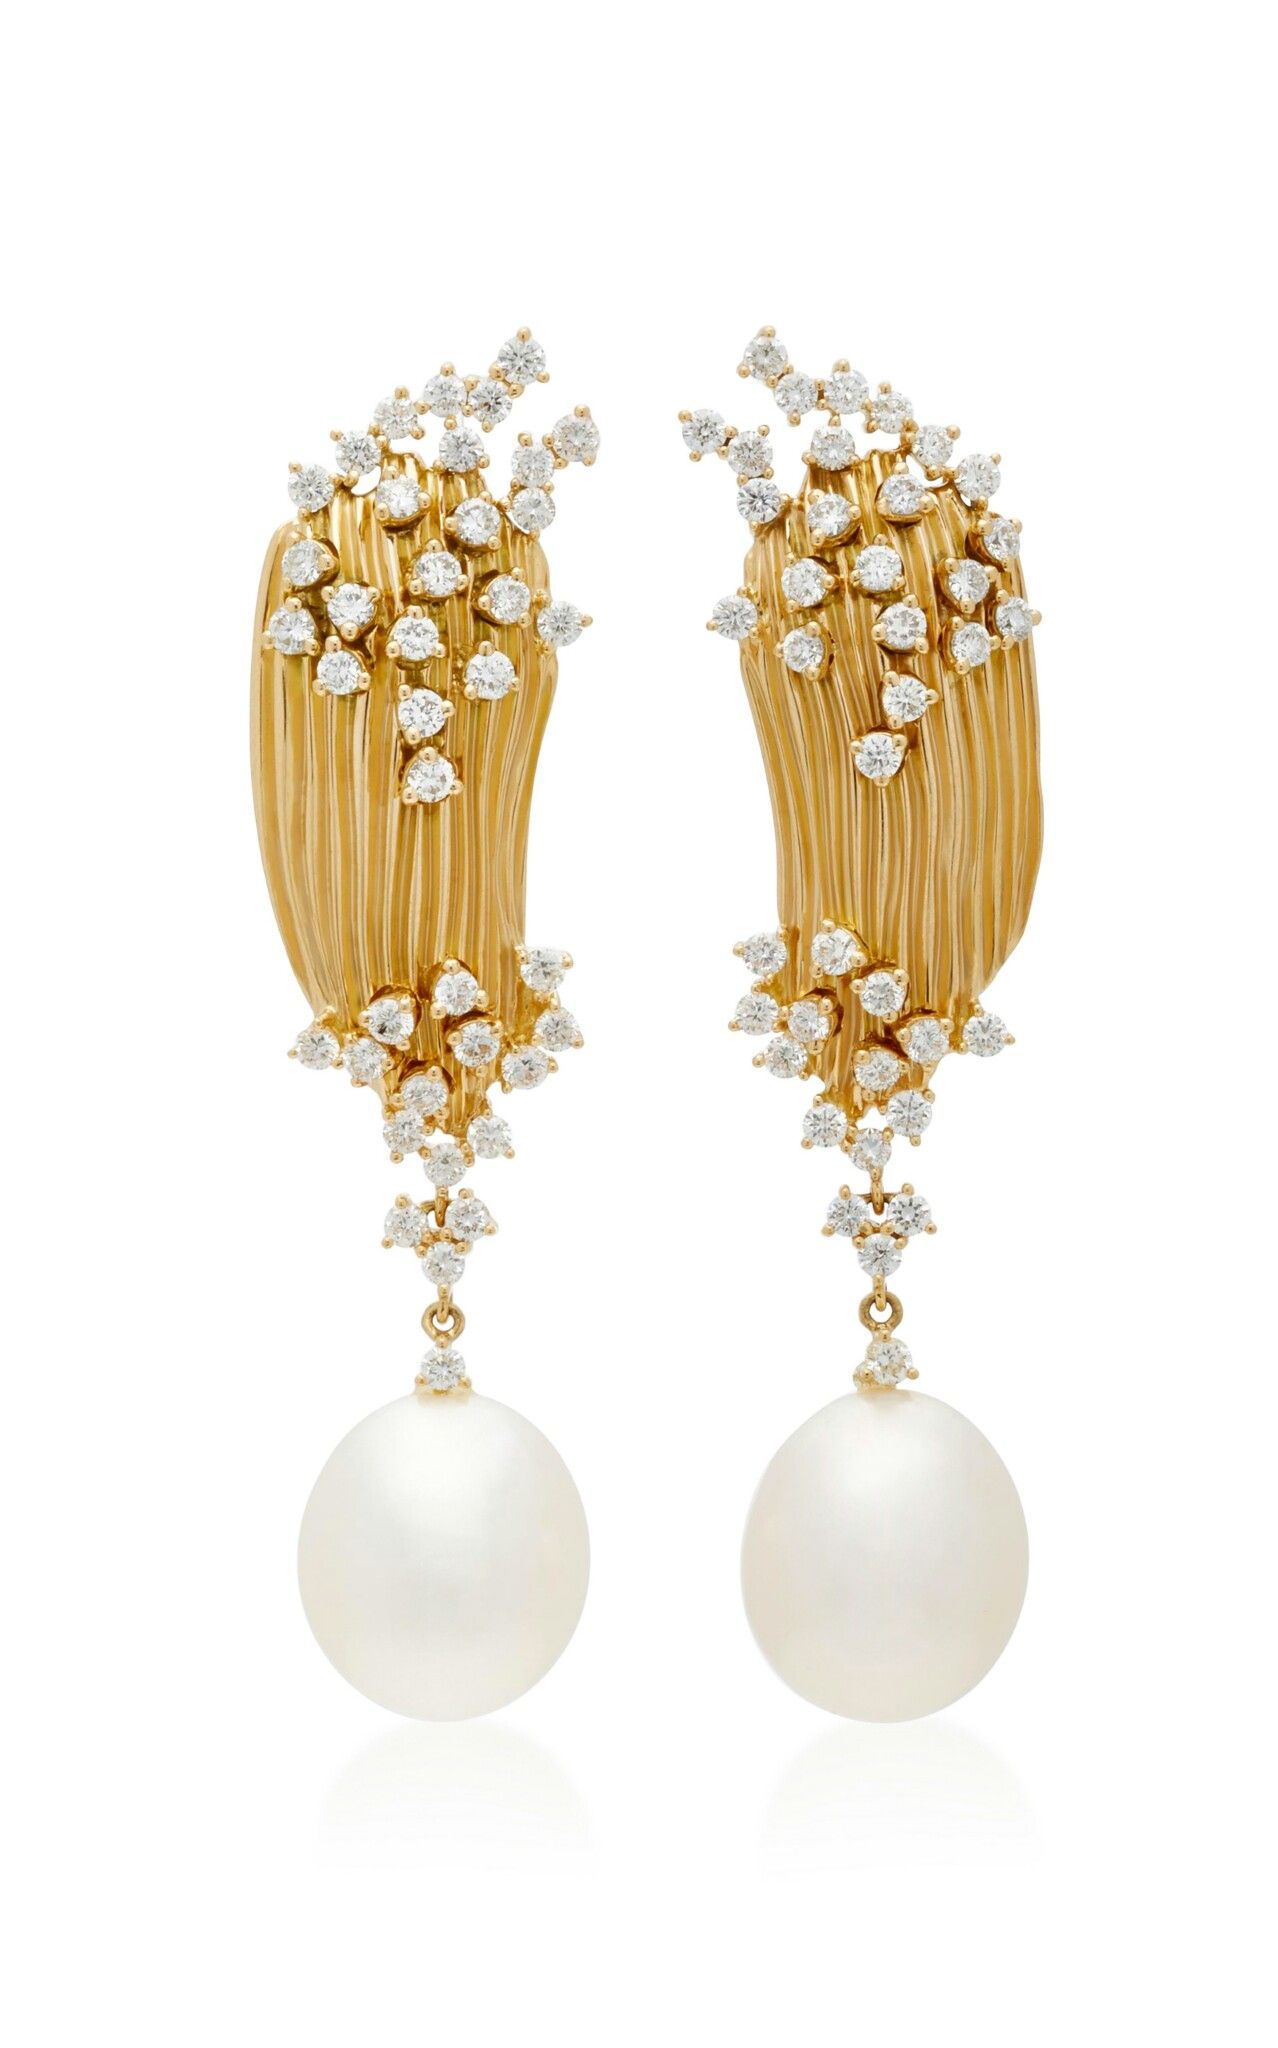 Hueb Plisse 18k Gold Earrings With Diamonds And Pearls